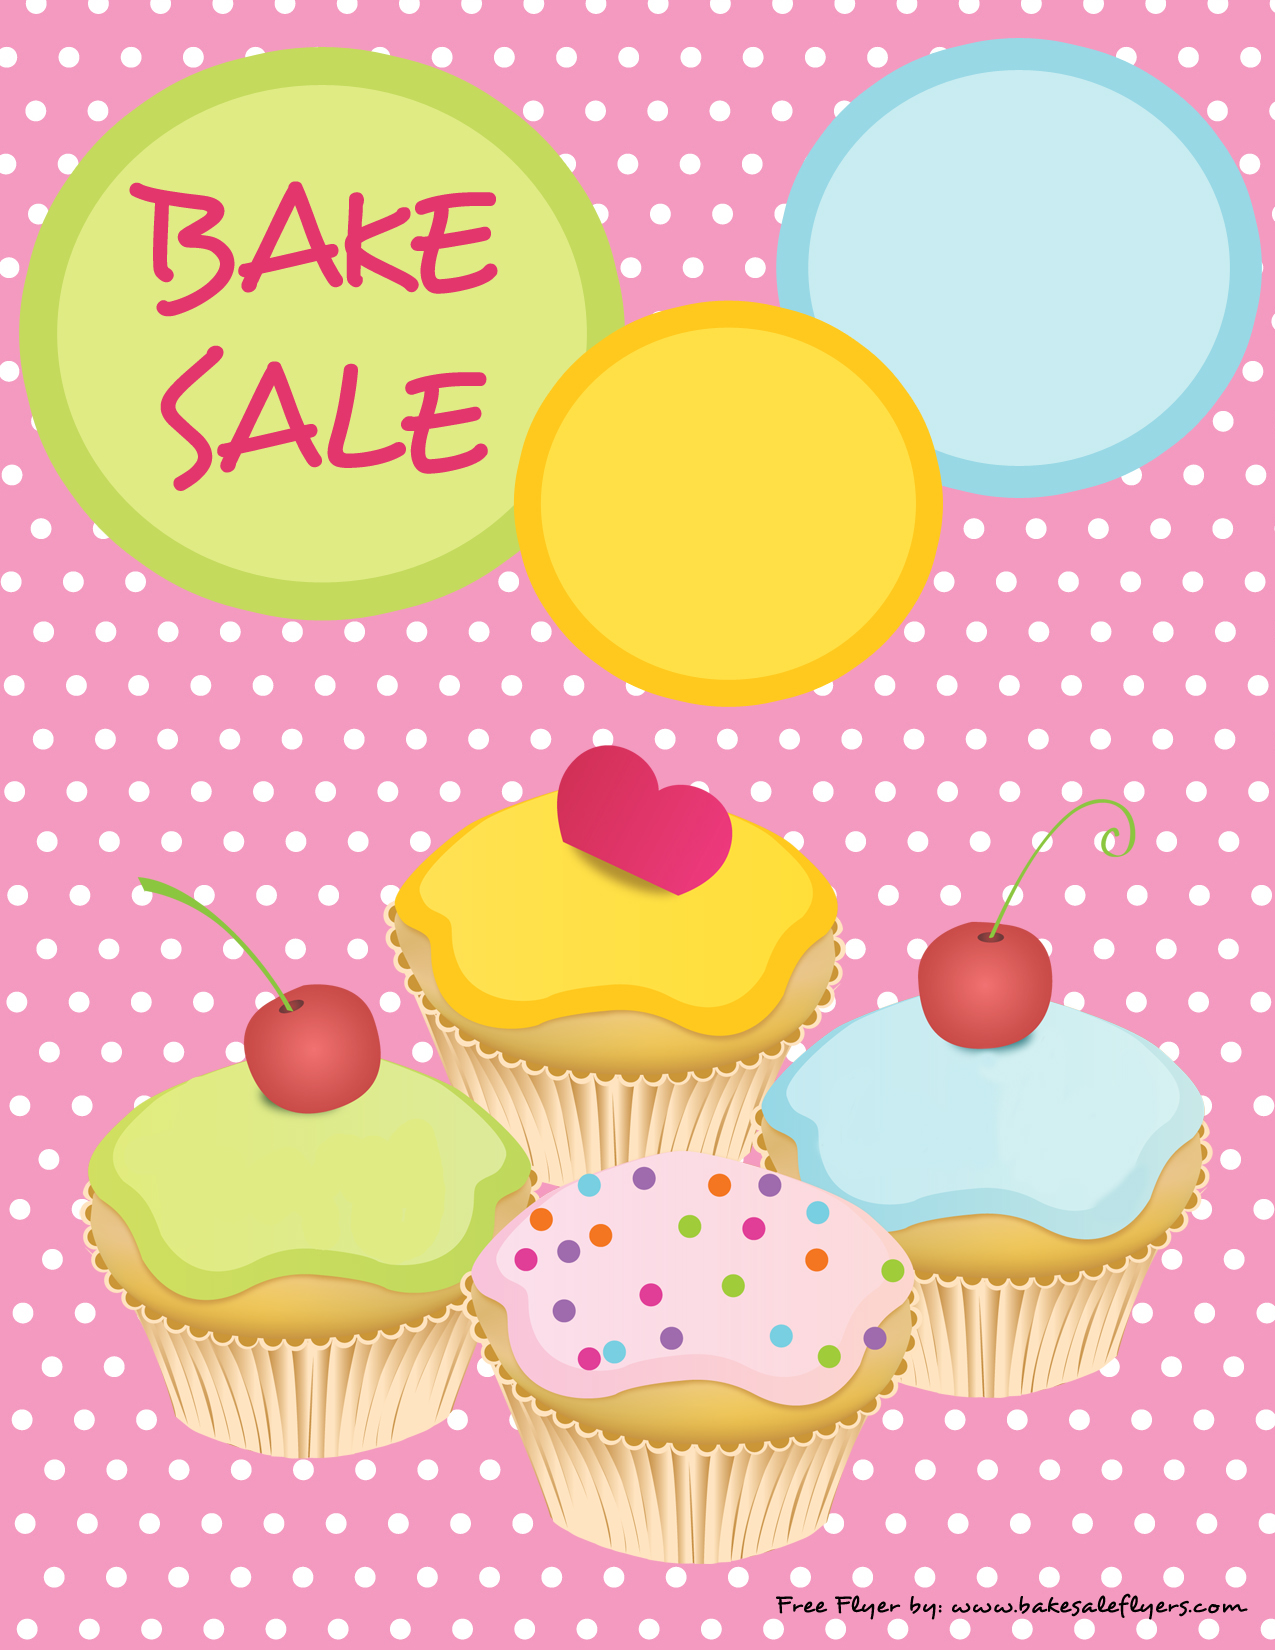 bake sign clipart clipart kid bake flyer template jpg 1275 1650 pixels cupcakes and